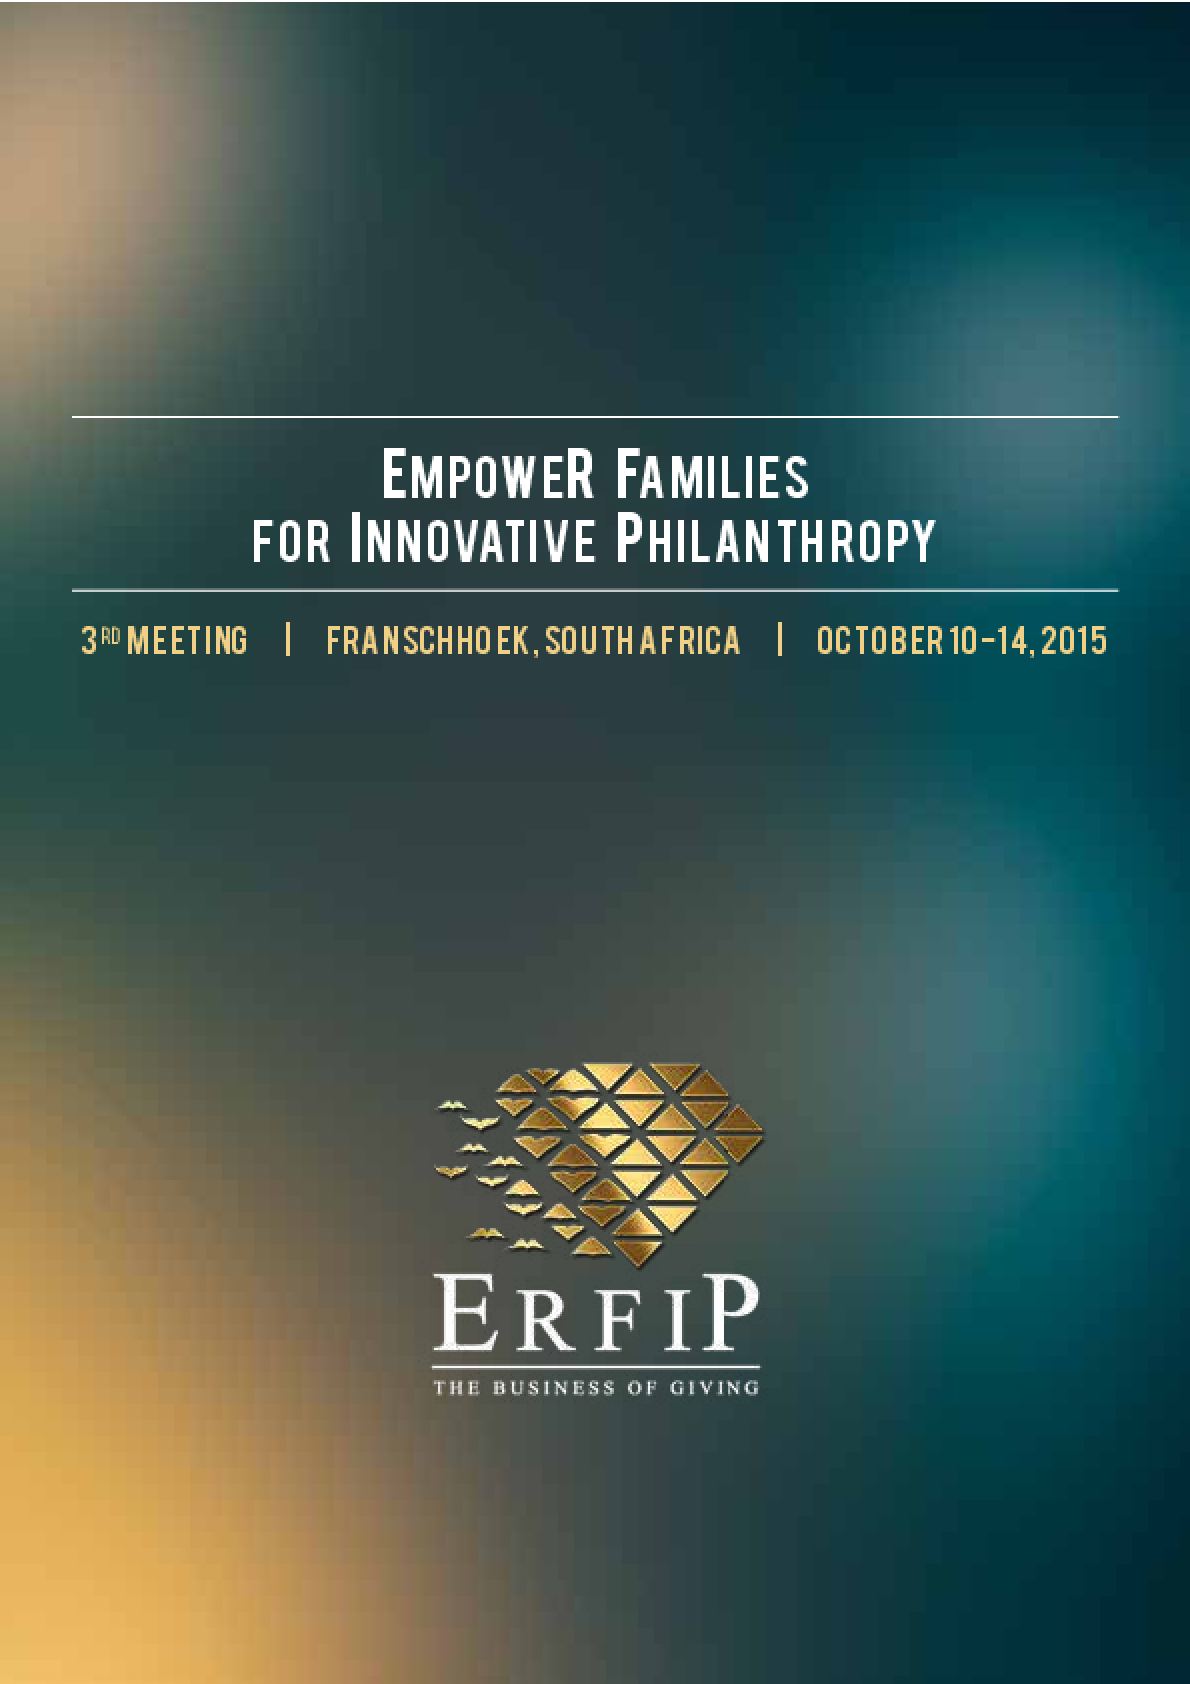 Empower Families for Innovative Philanthropy (ERFIP): Third meeting report